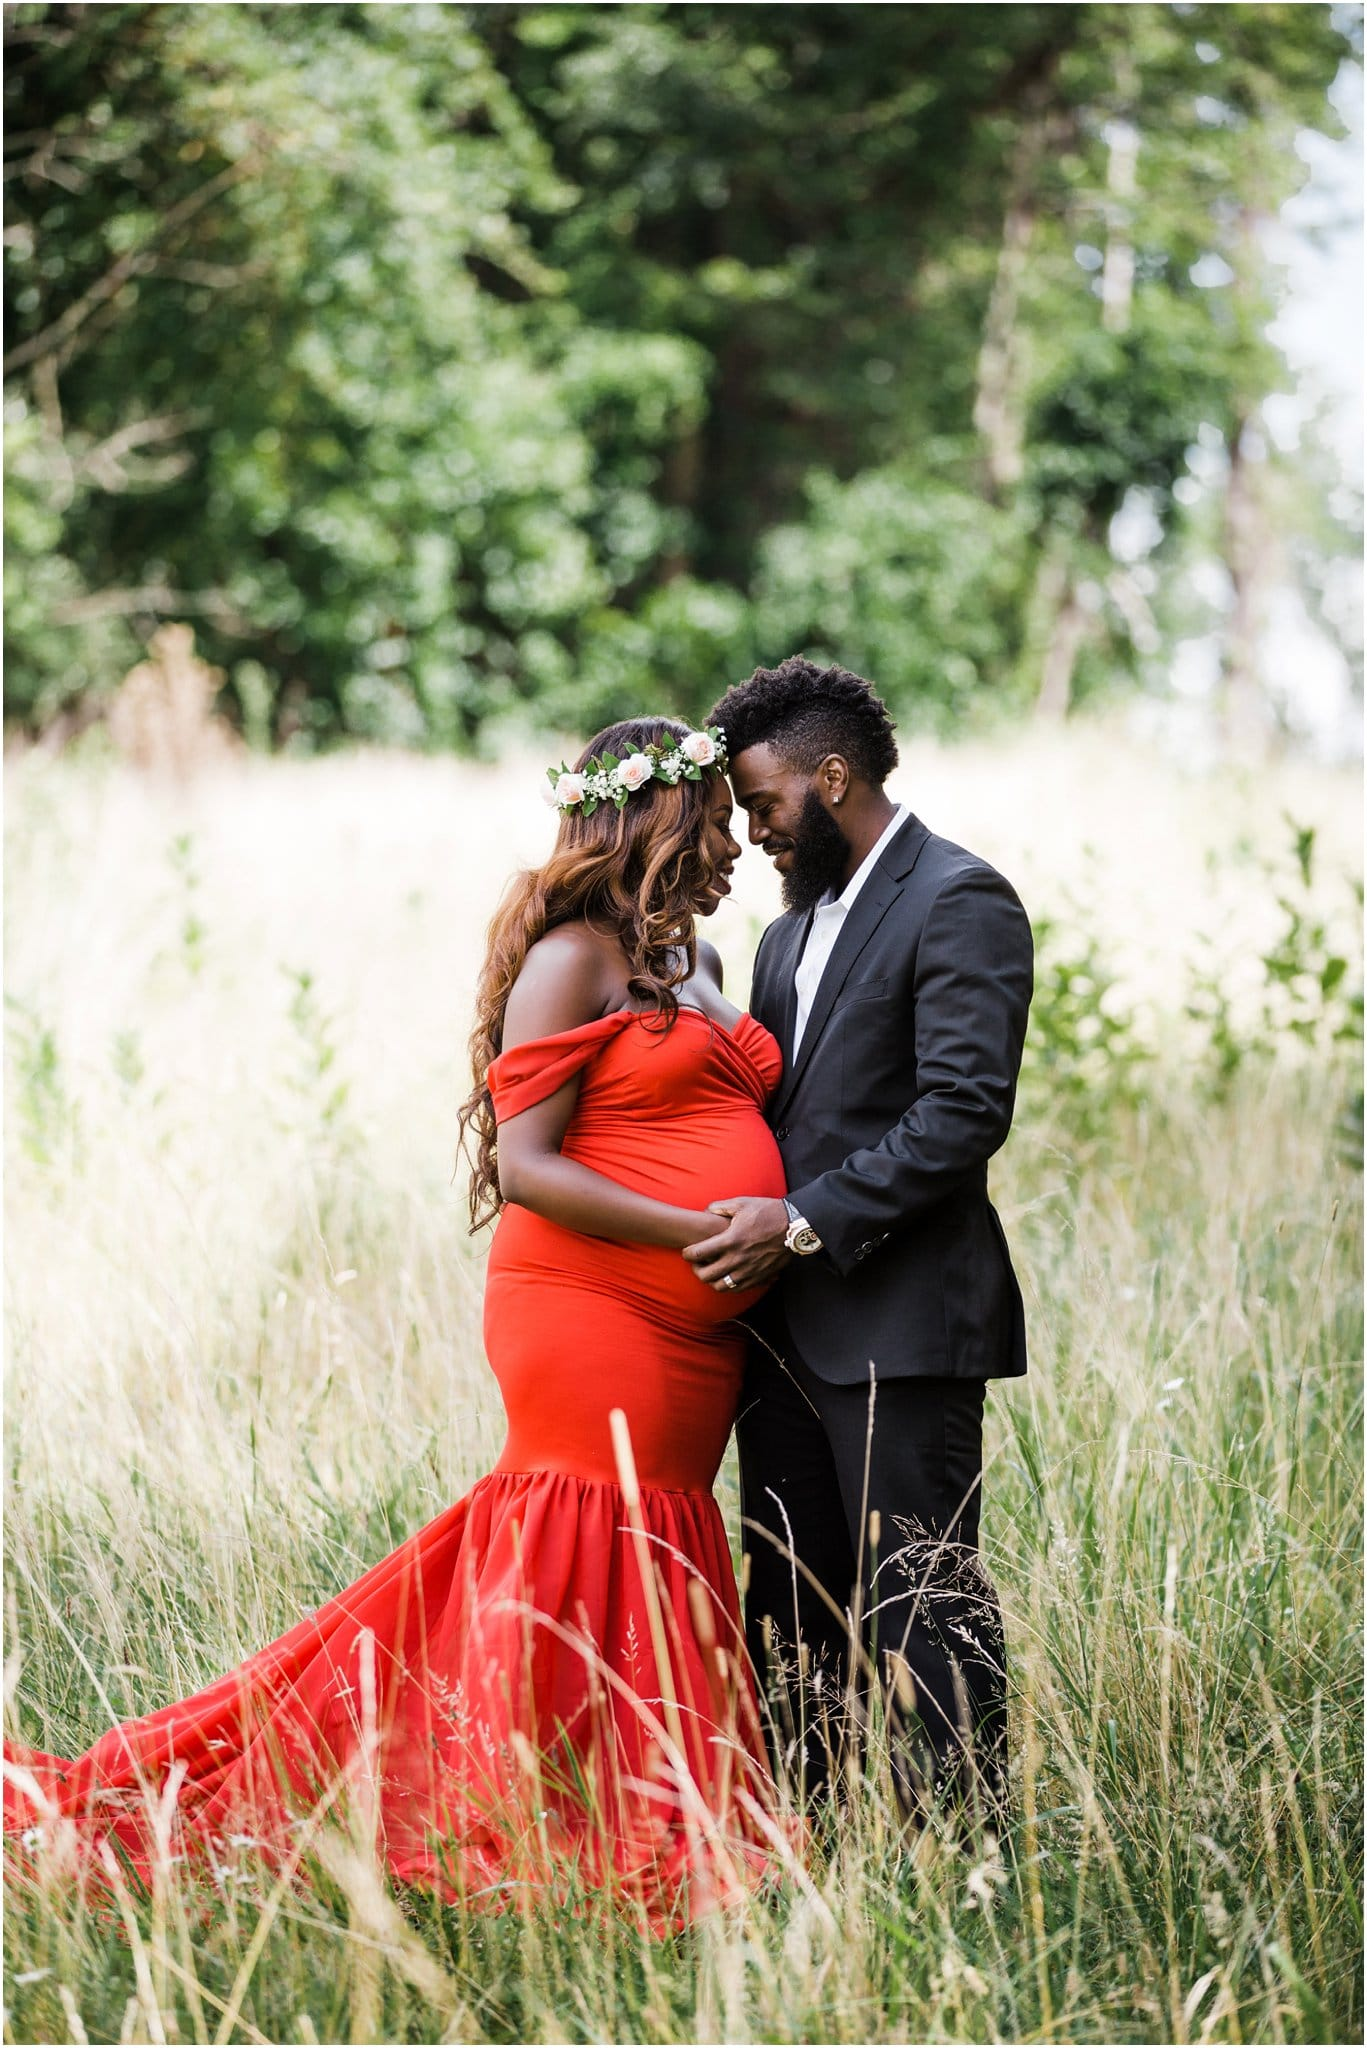 Glam red maternity dress and flower crown